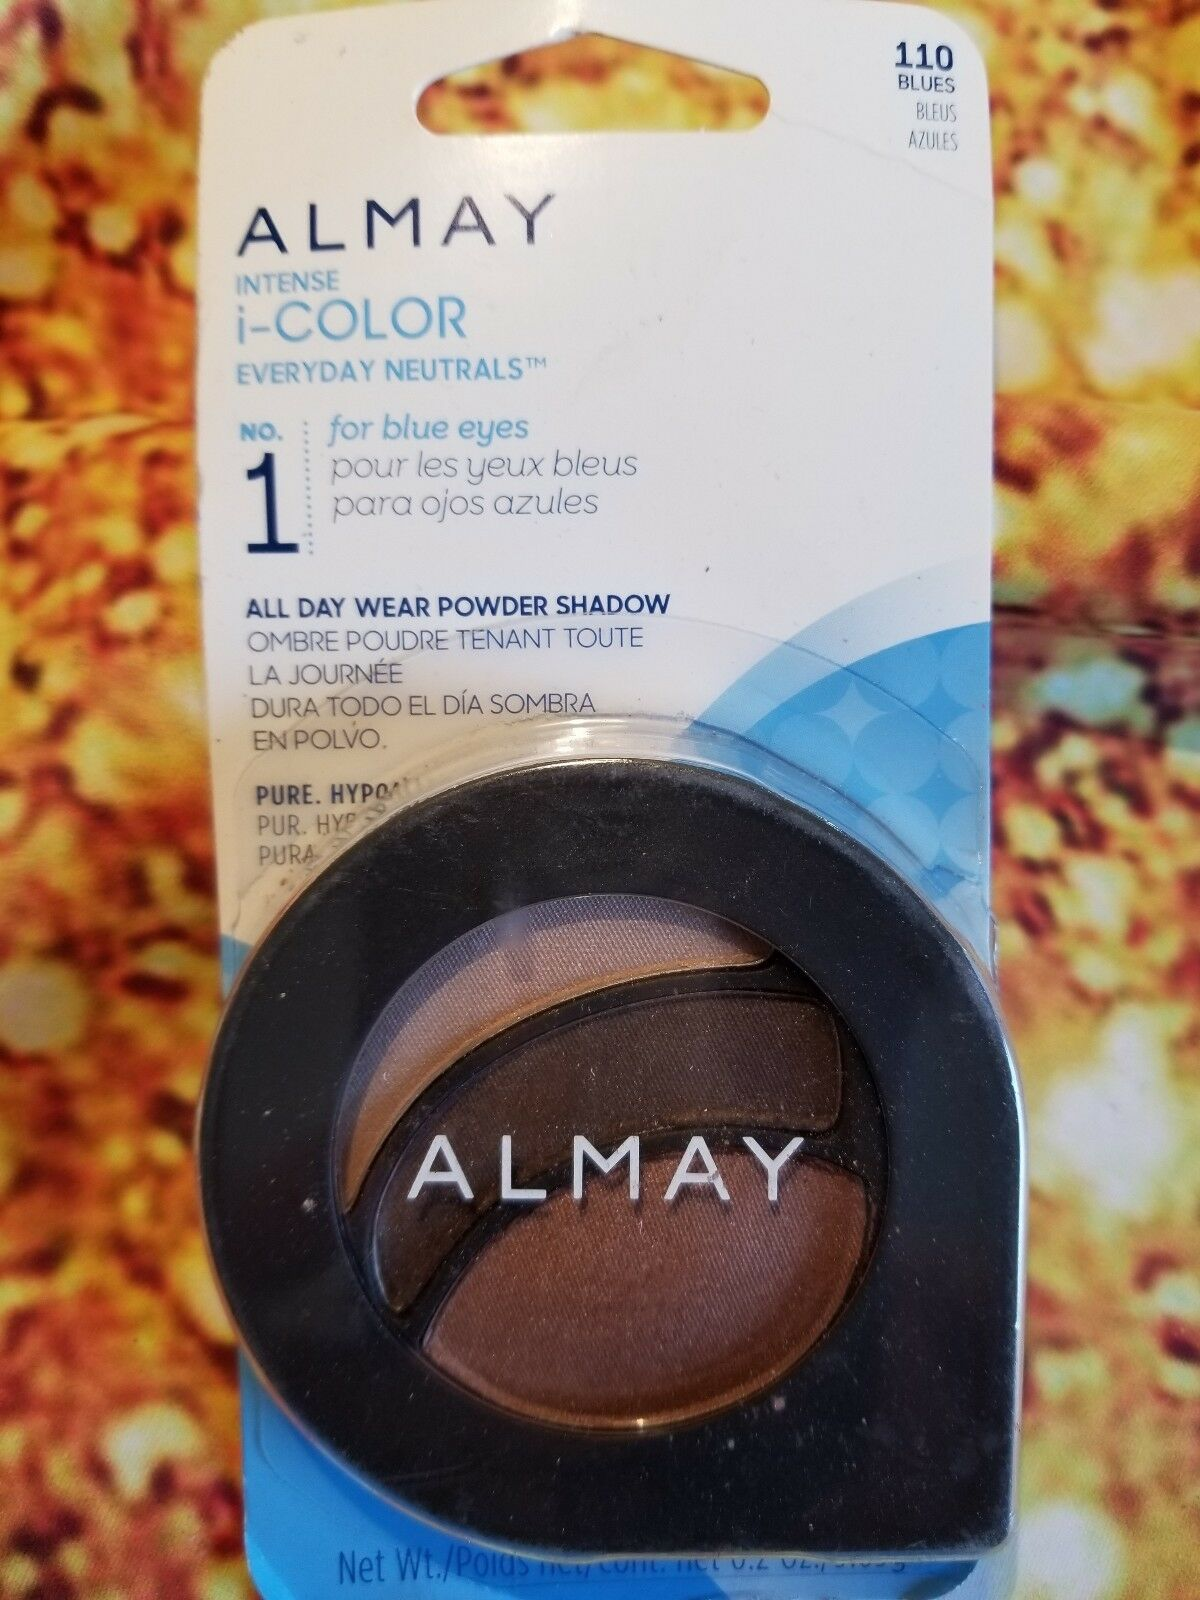 almay intense i-color party brights blue eye shadow face